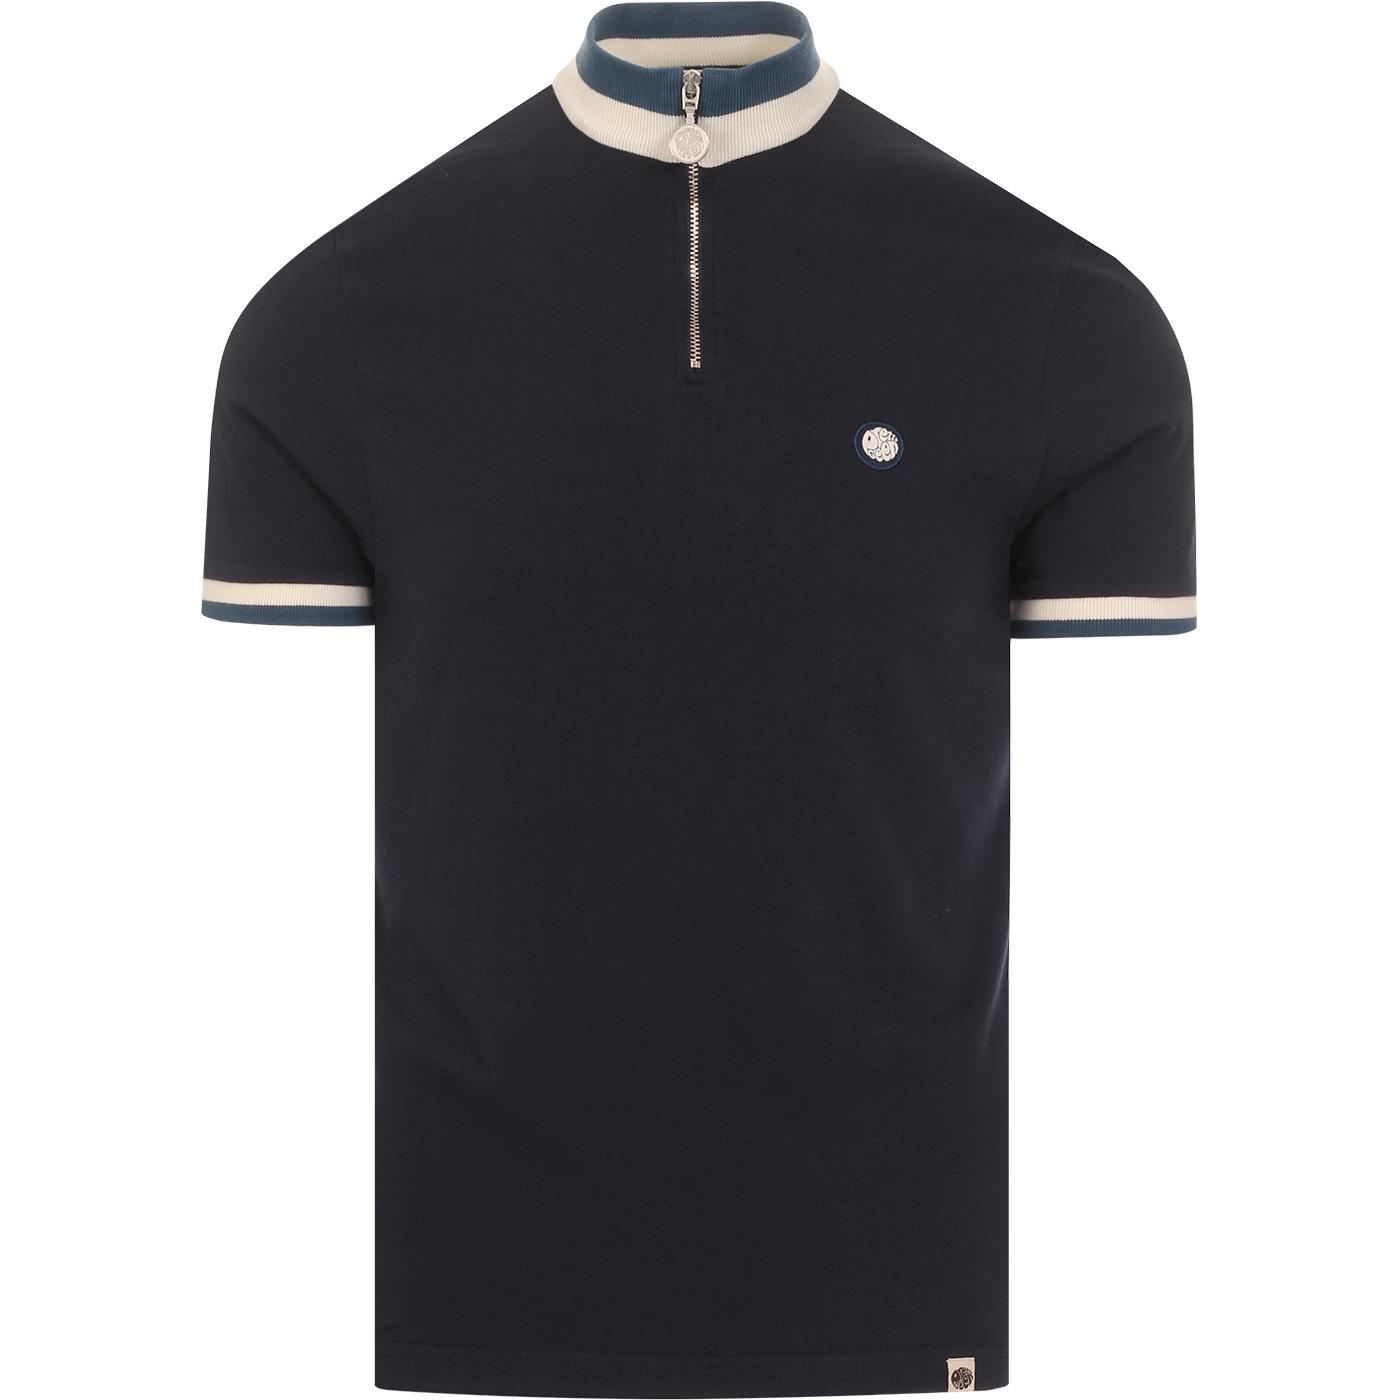 PRETTY GREEN Mod Tipped Zip Neck Cycling Top NAVY